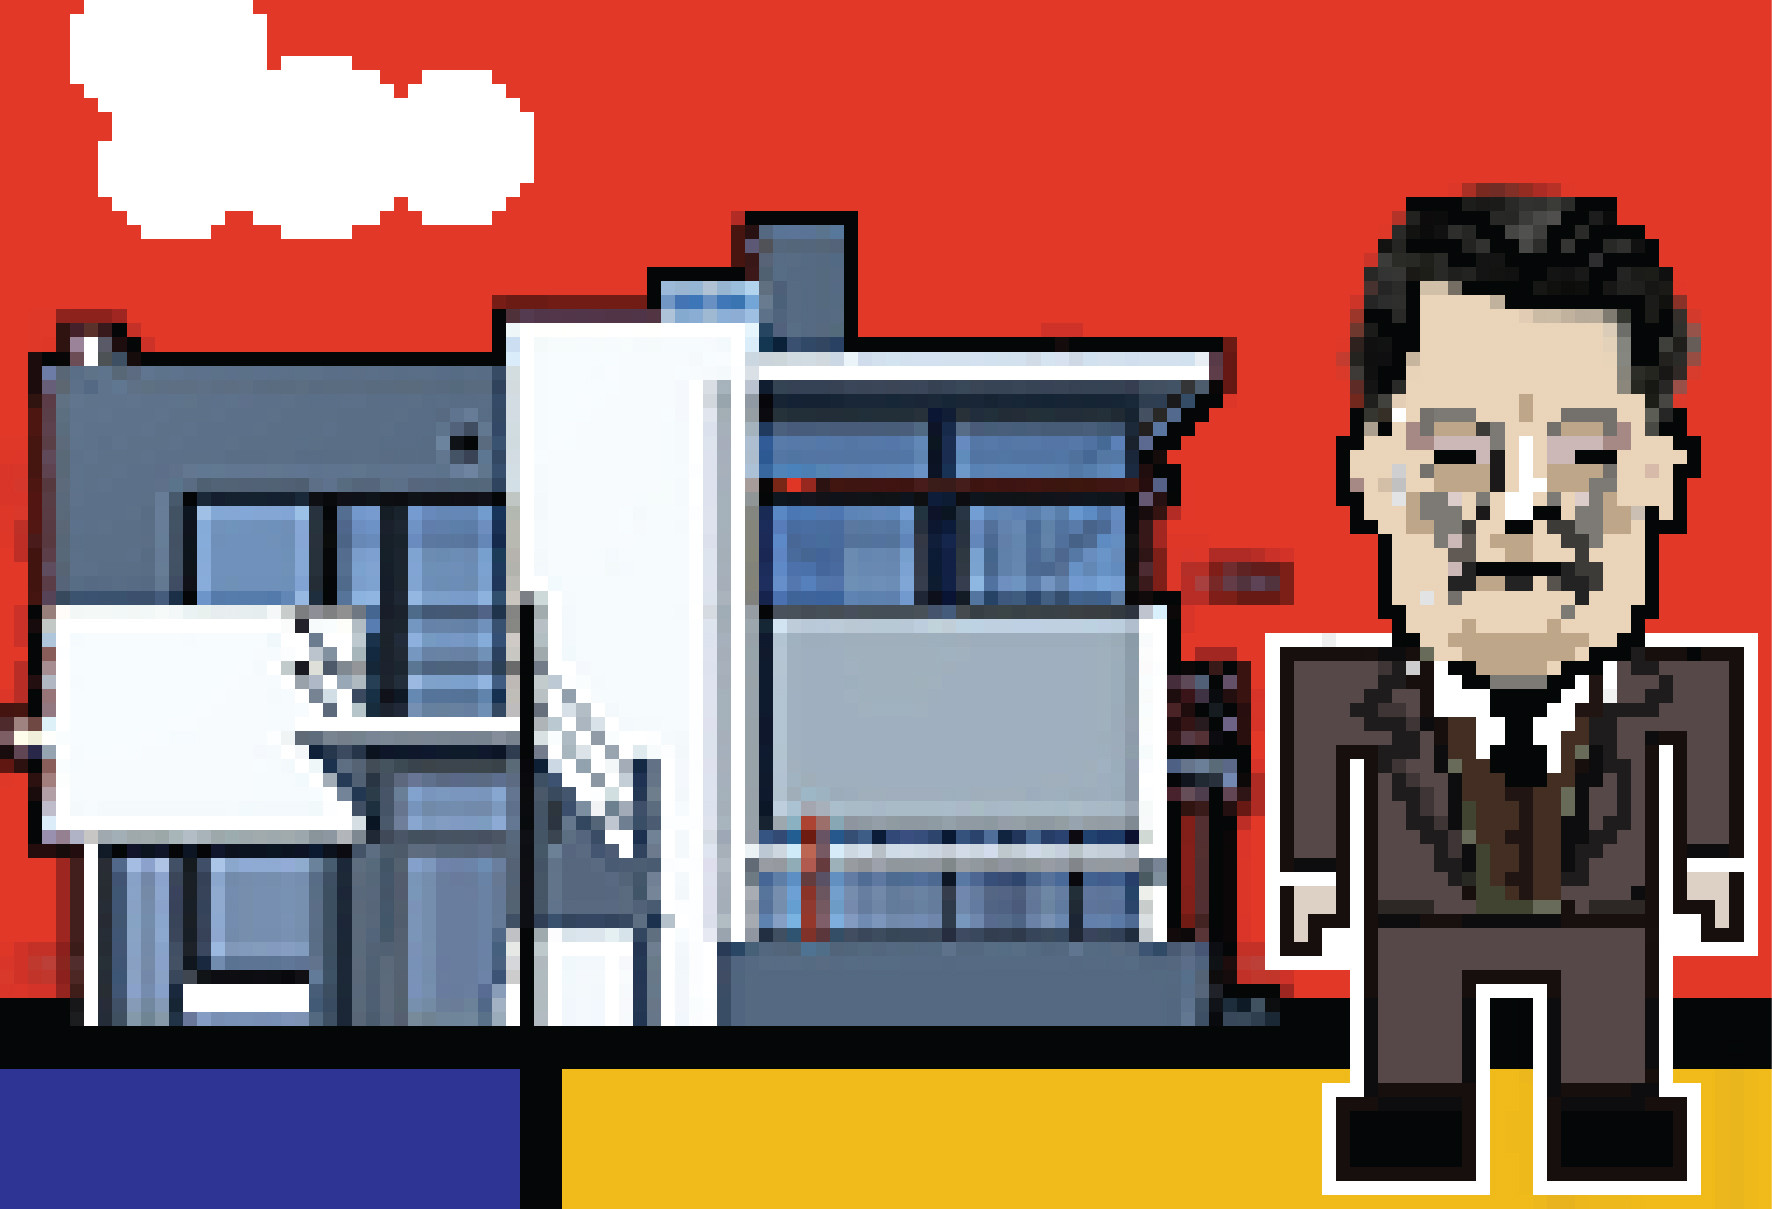 Rietveld Schröder House / Gerrit Rietveld. Image Courtesy of Federico Babina